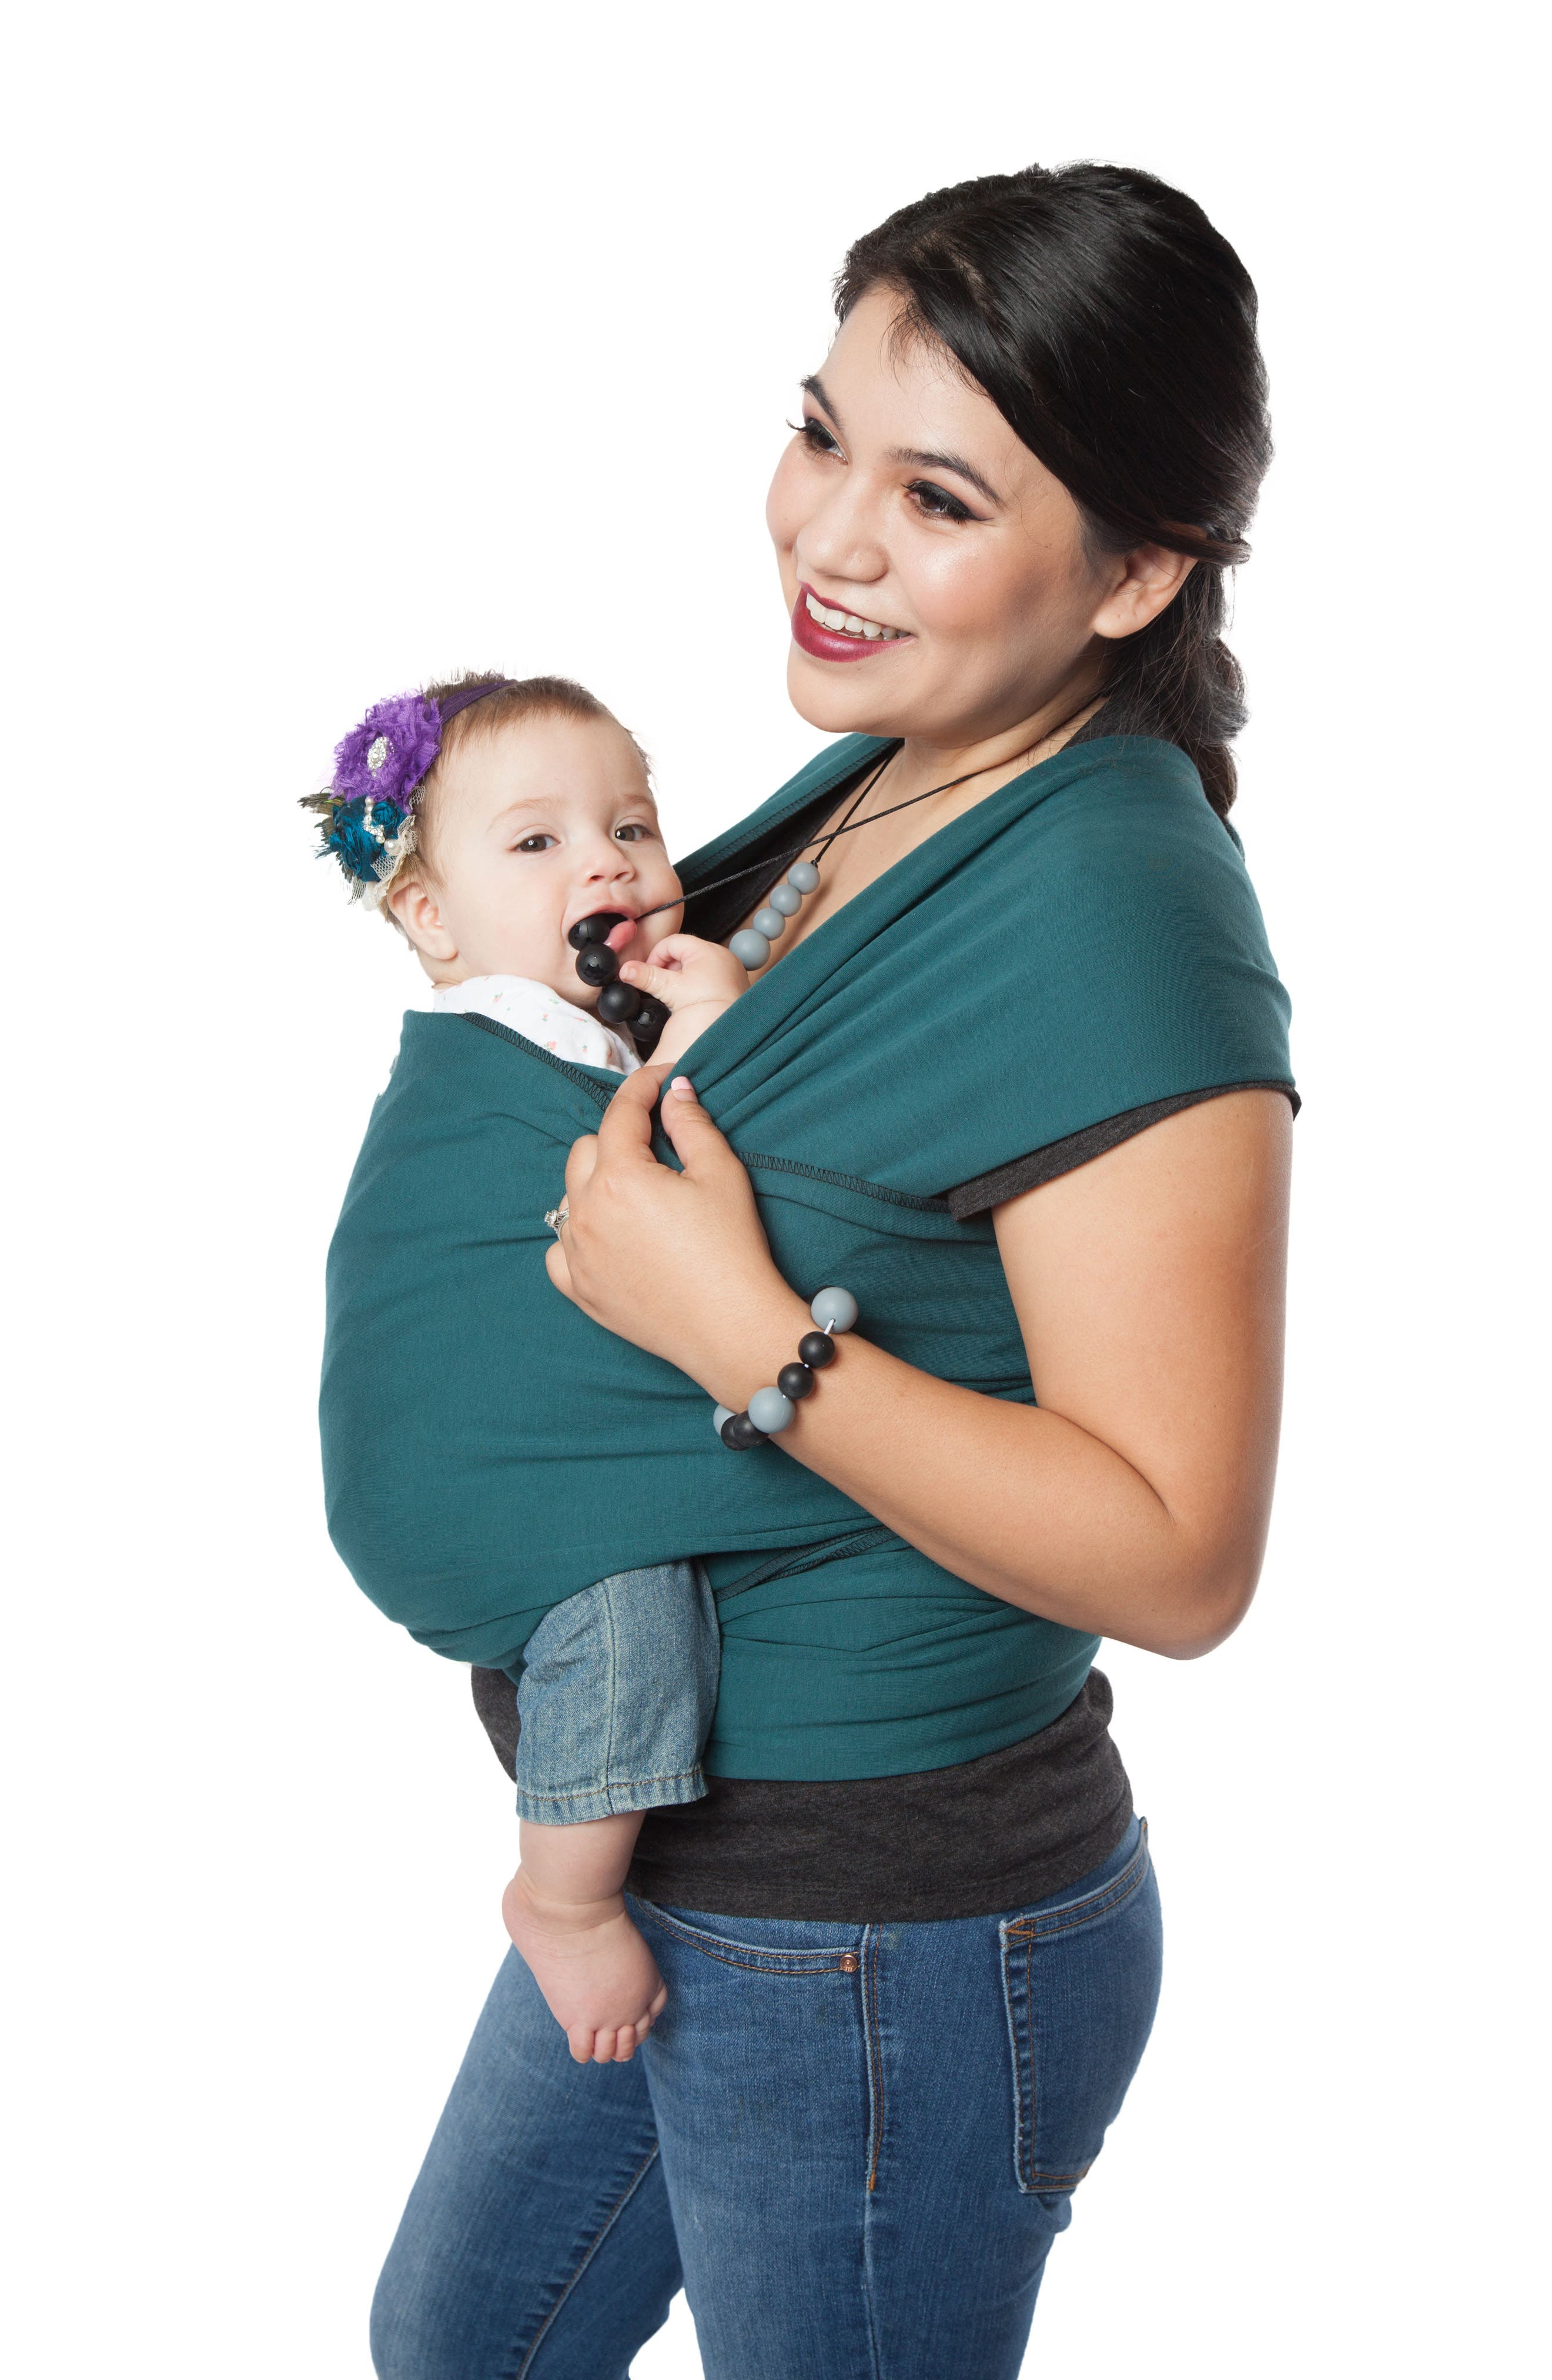 Alternate Image 3  - Moby Wrap 'Moderns' Baby Carrier